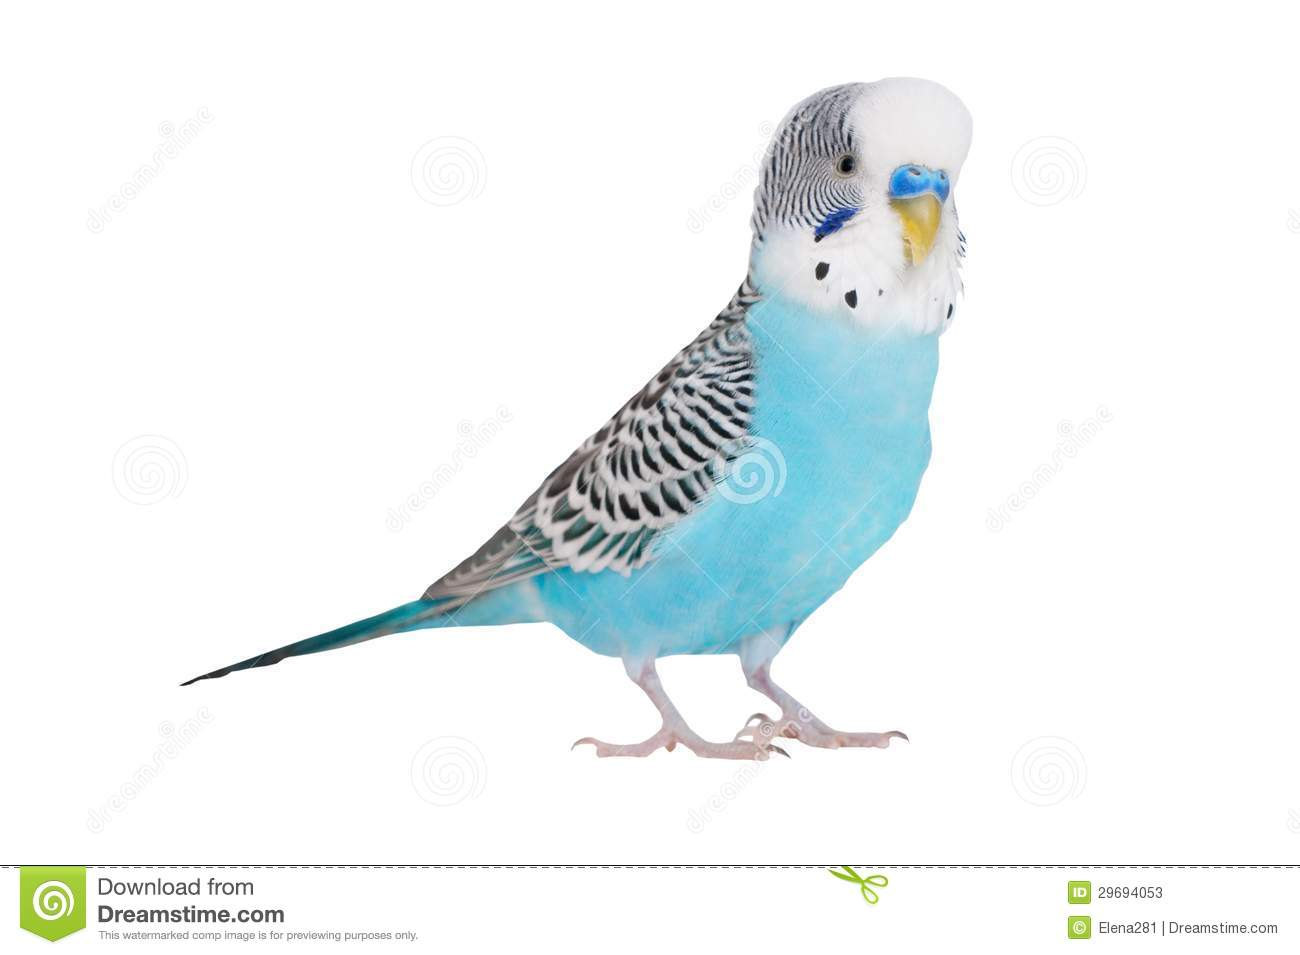 What is interesting wavy parrots, how to determine the age and gender 51